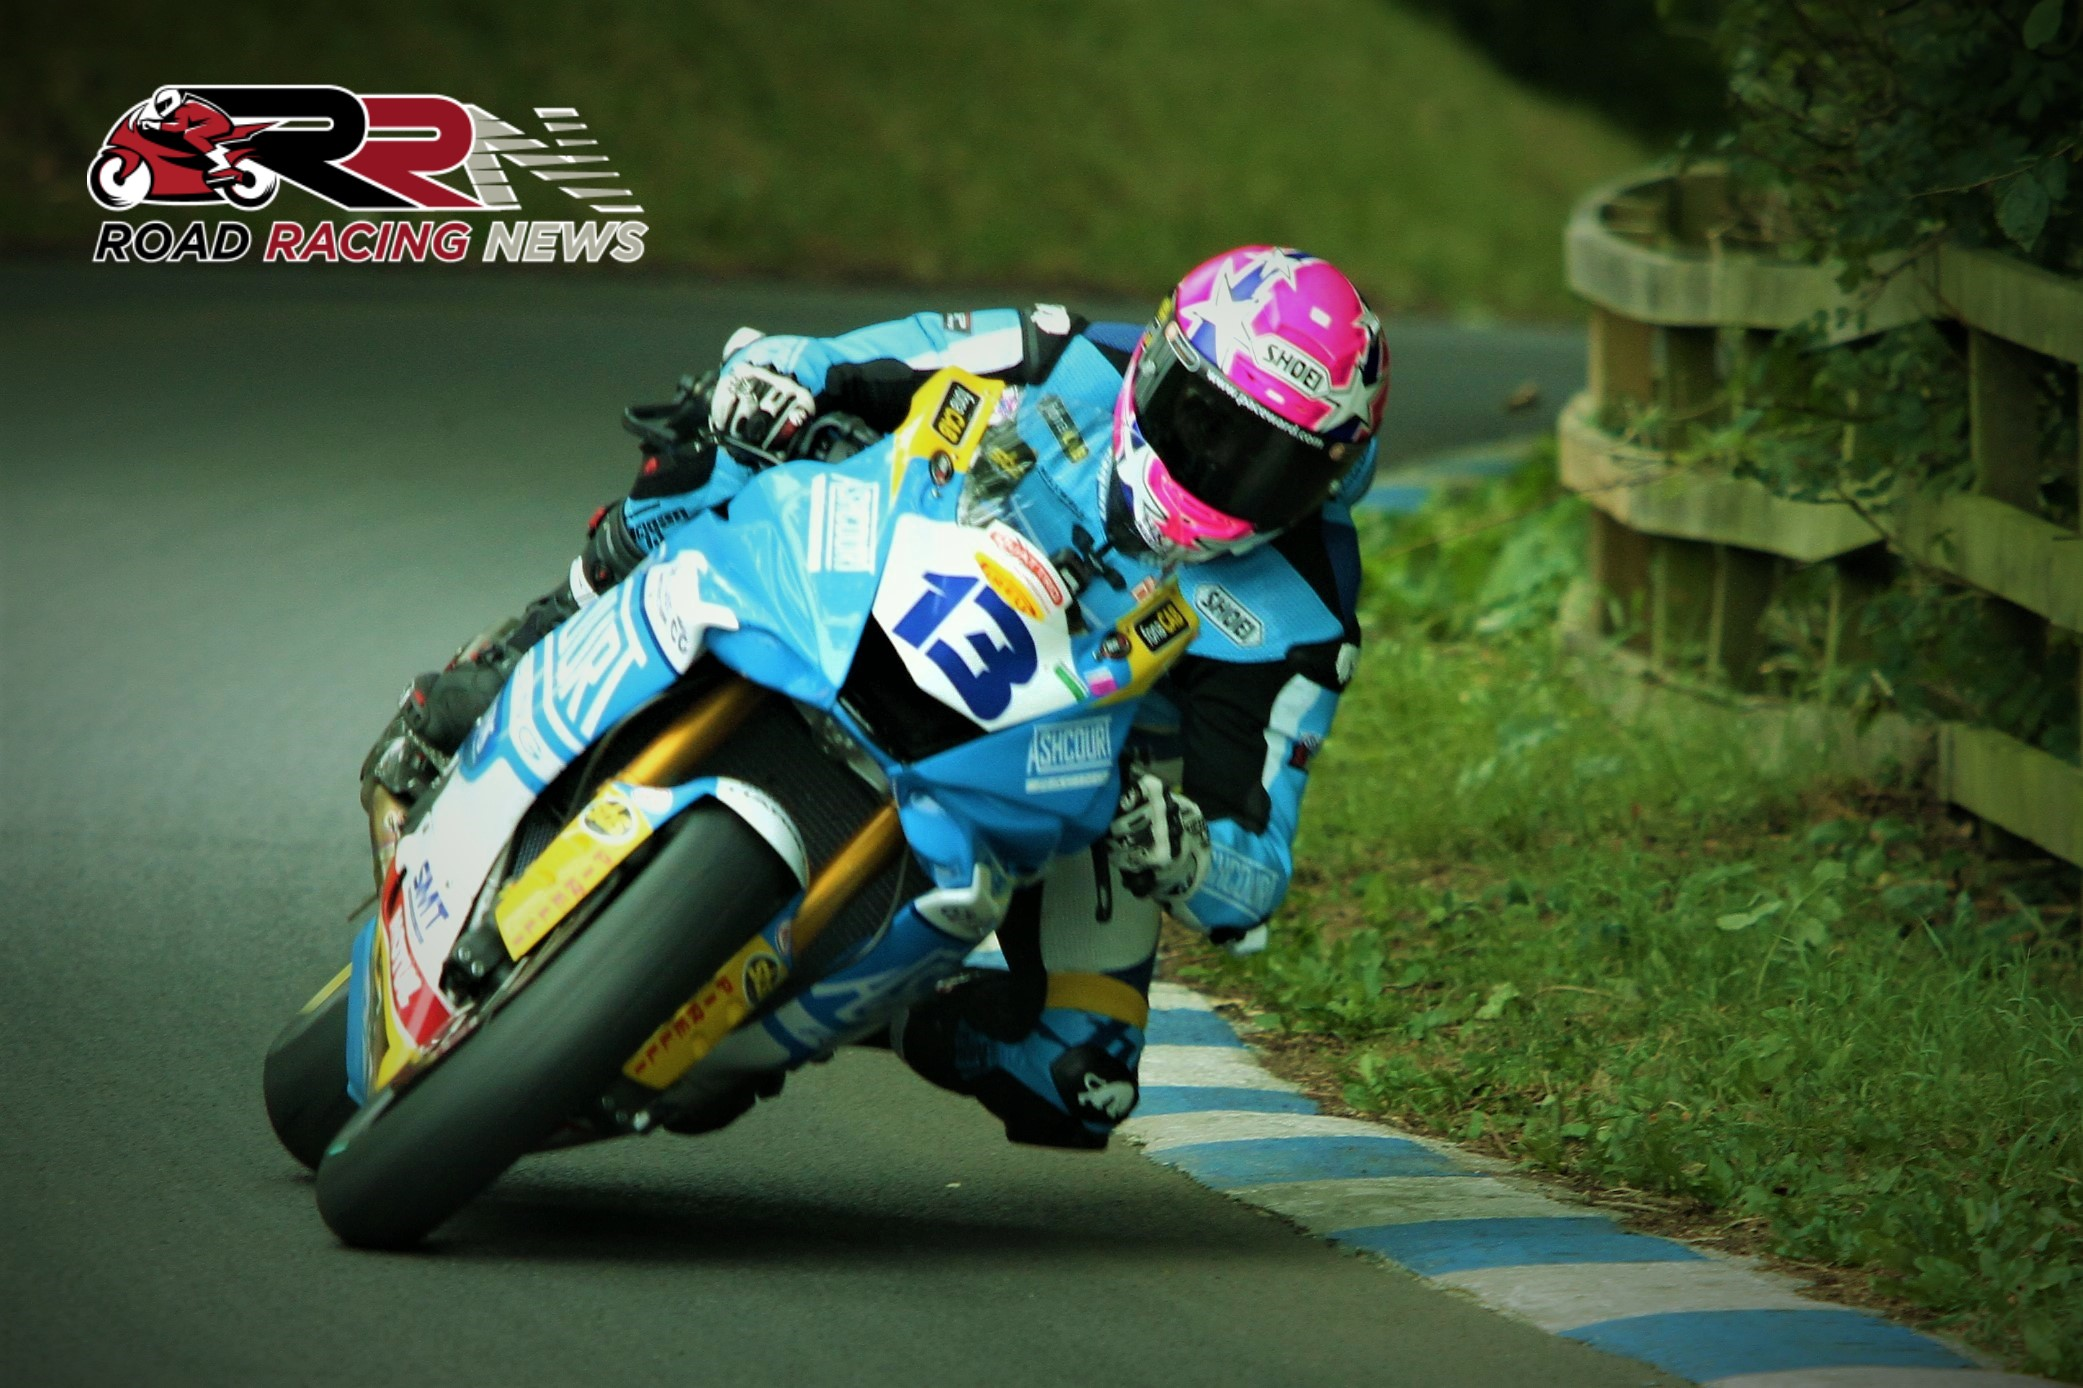 69th Scarborough Gold Cup: Practice/Qualifying/Race Running Order